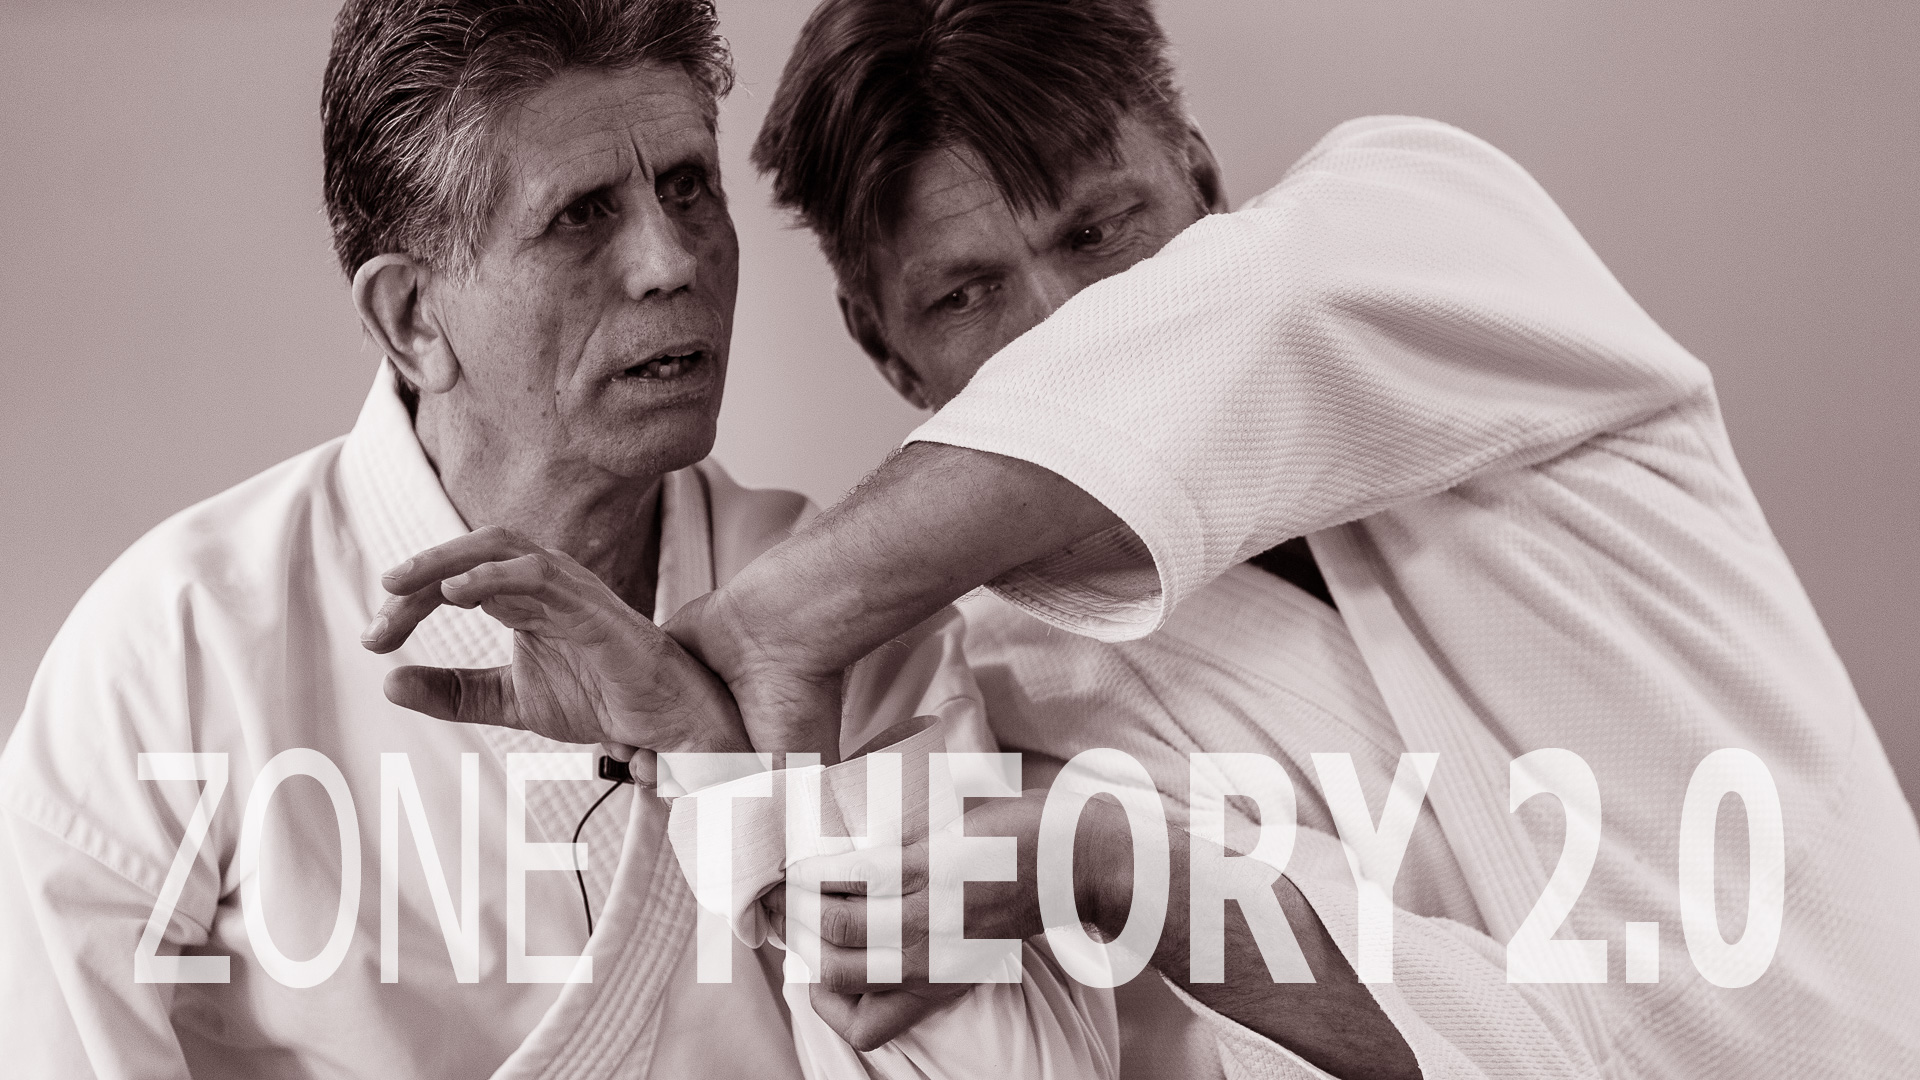 Zone Theory of Aikido 2.0